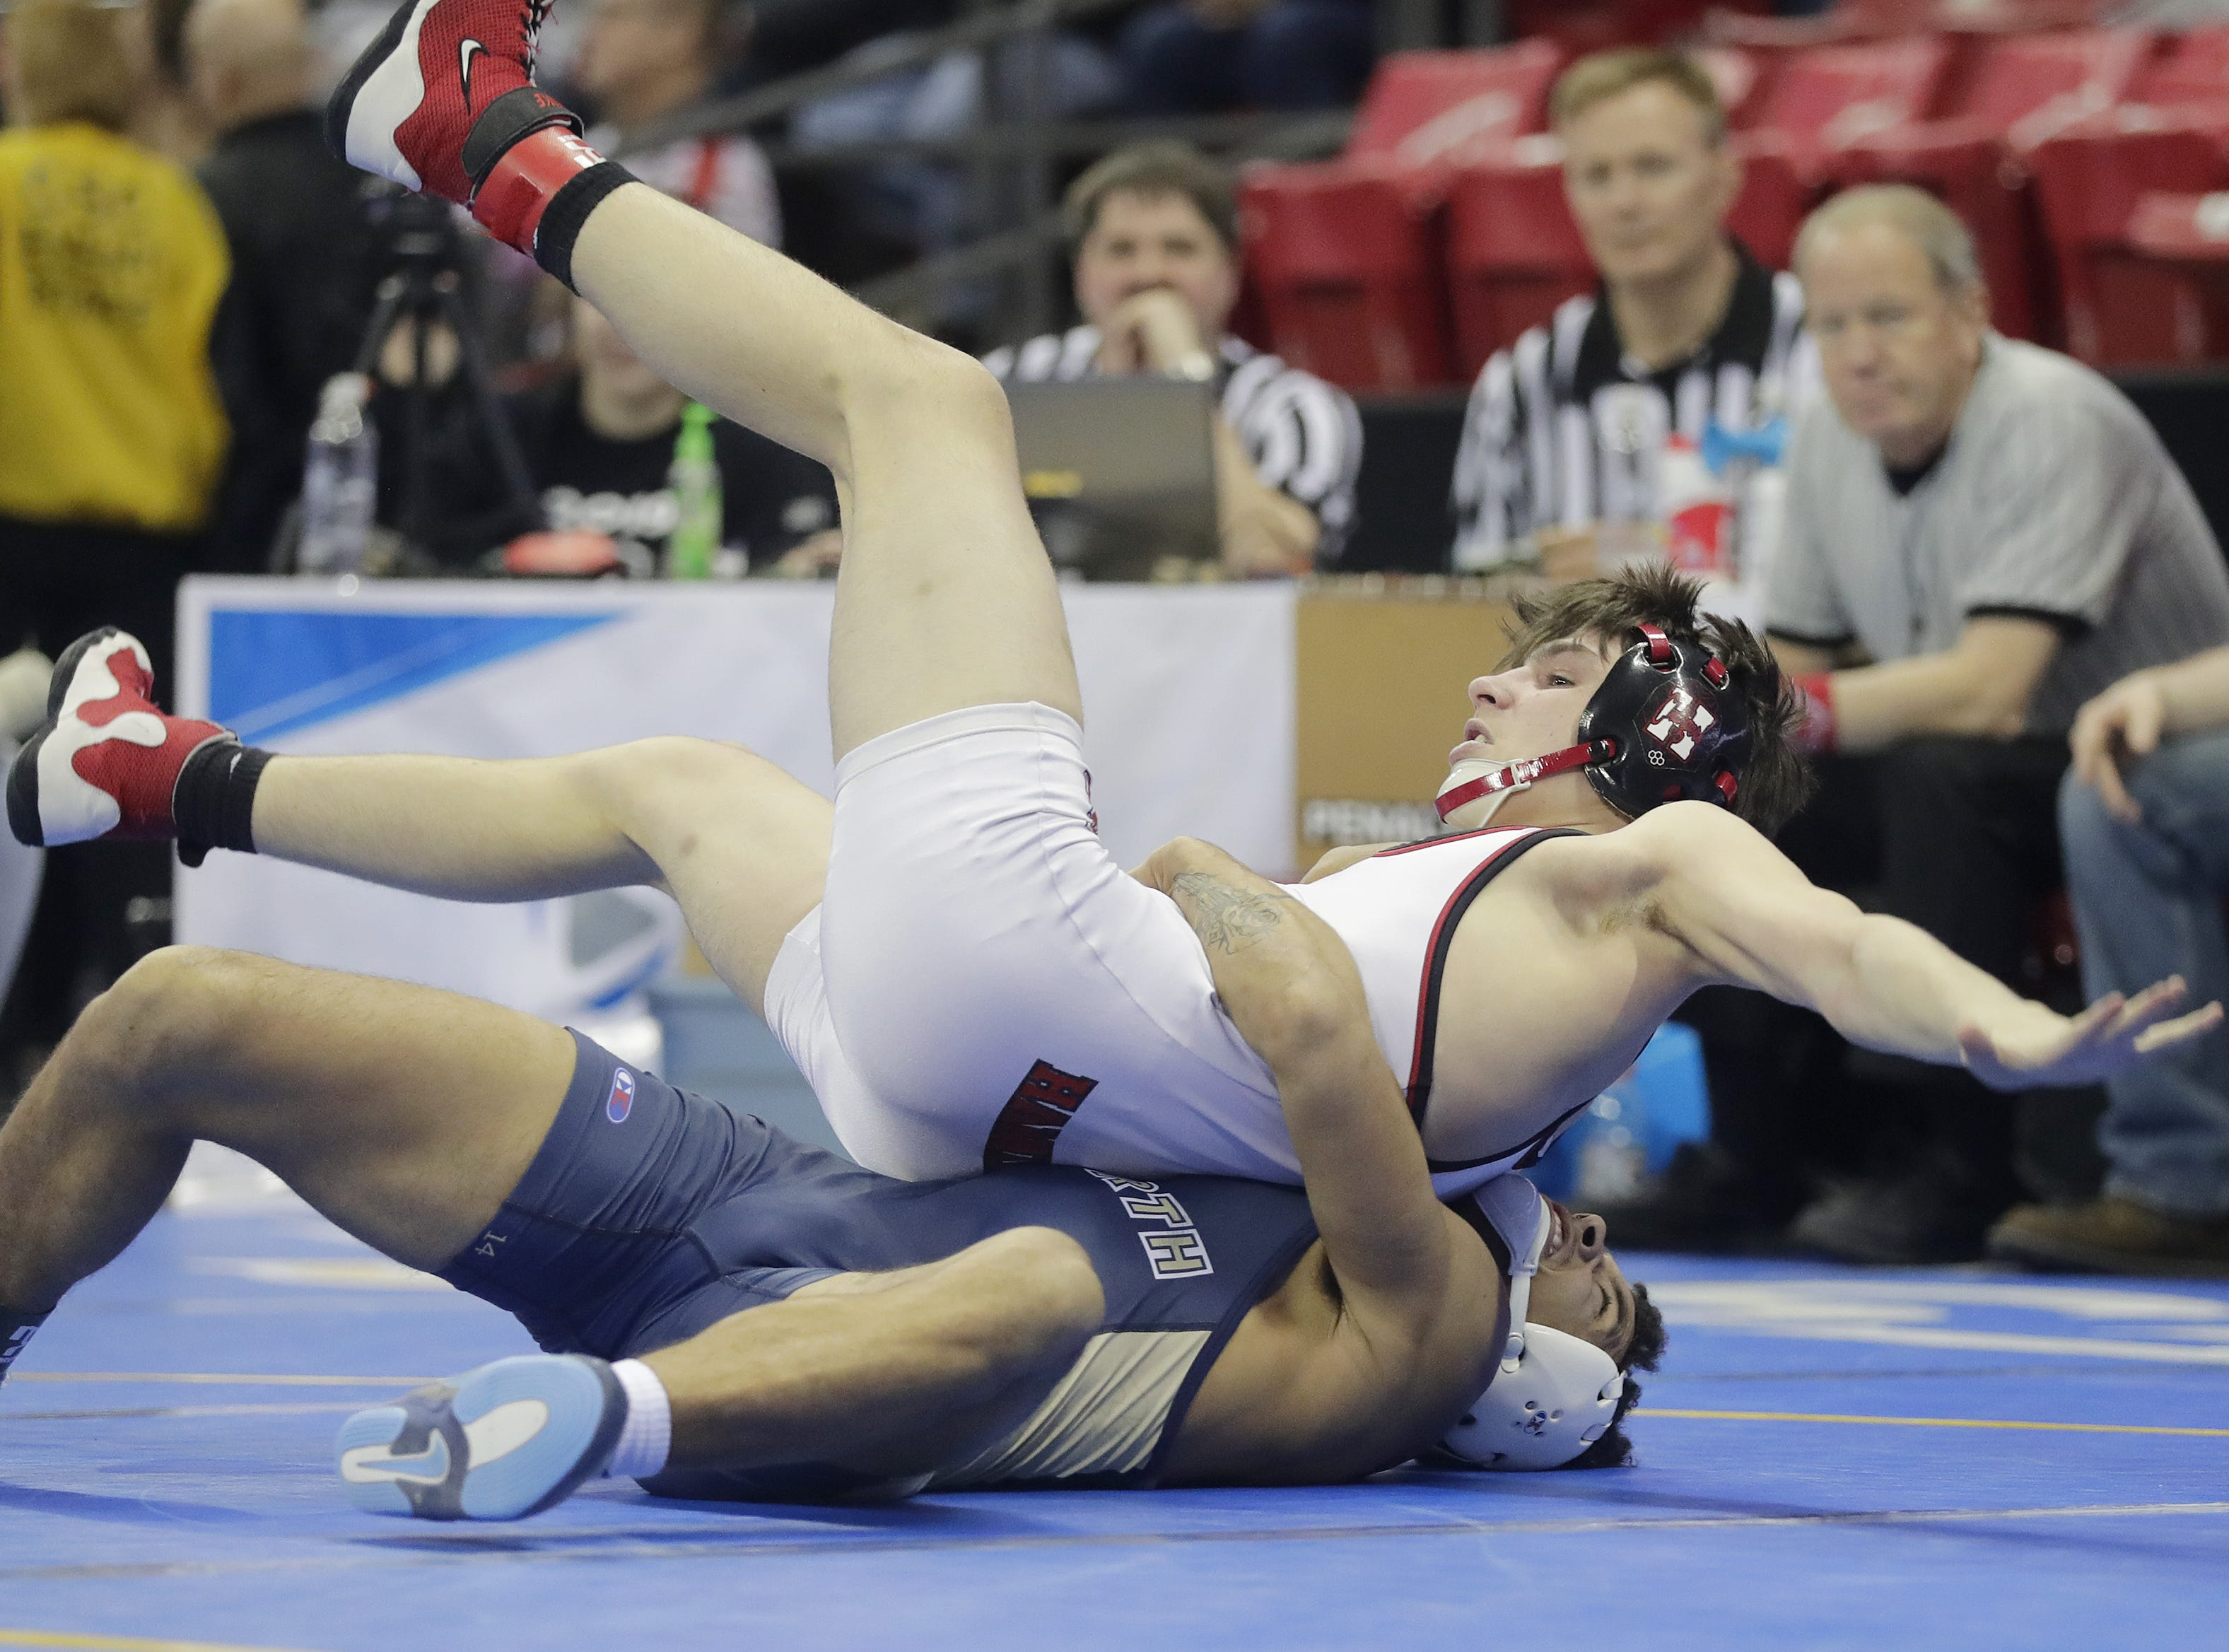 Appleton North's Terrell Williams wrestles Stoughton's Brooks Empey in a Division 1 195-pound preliminary match at the WIAA state individual wrestling tournament at the Kohl Center on Thursday, February 21, 2019 in Madison, Wis. Adam Wesley/USA TODAY NETWORK-Wisconsin